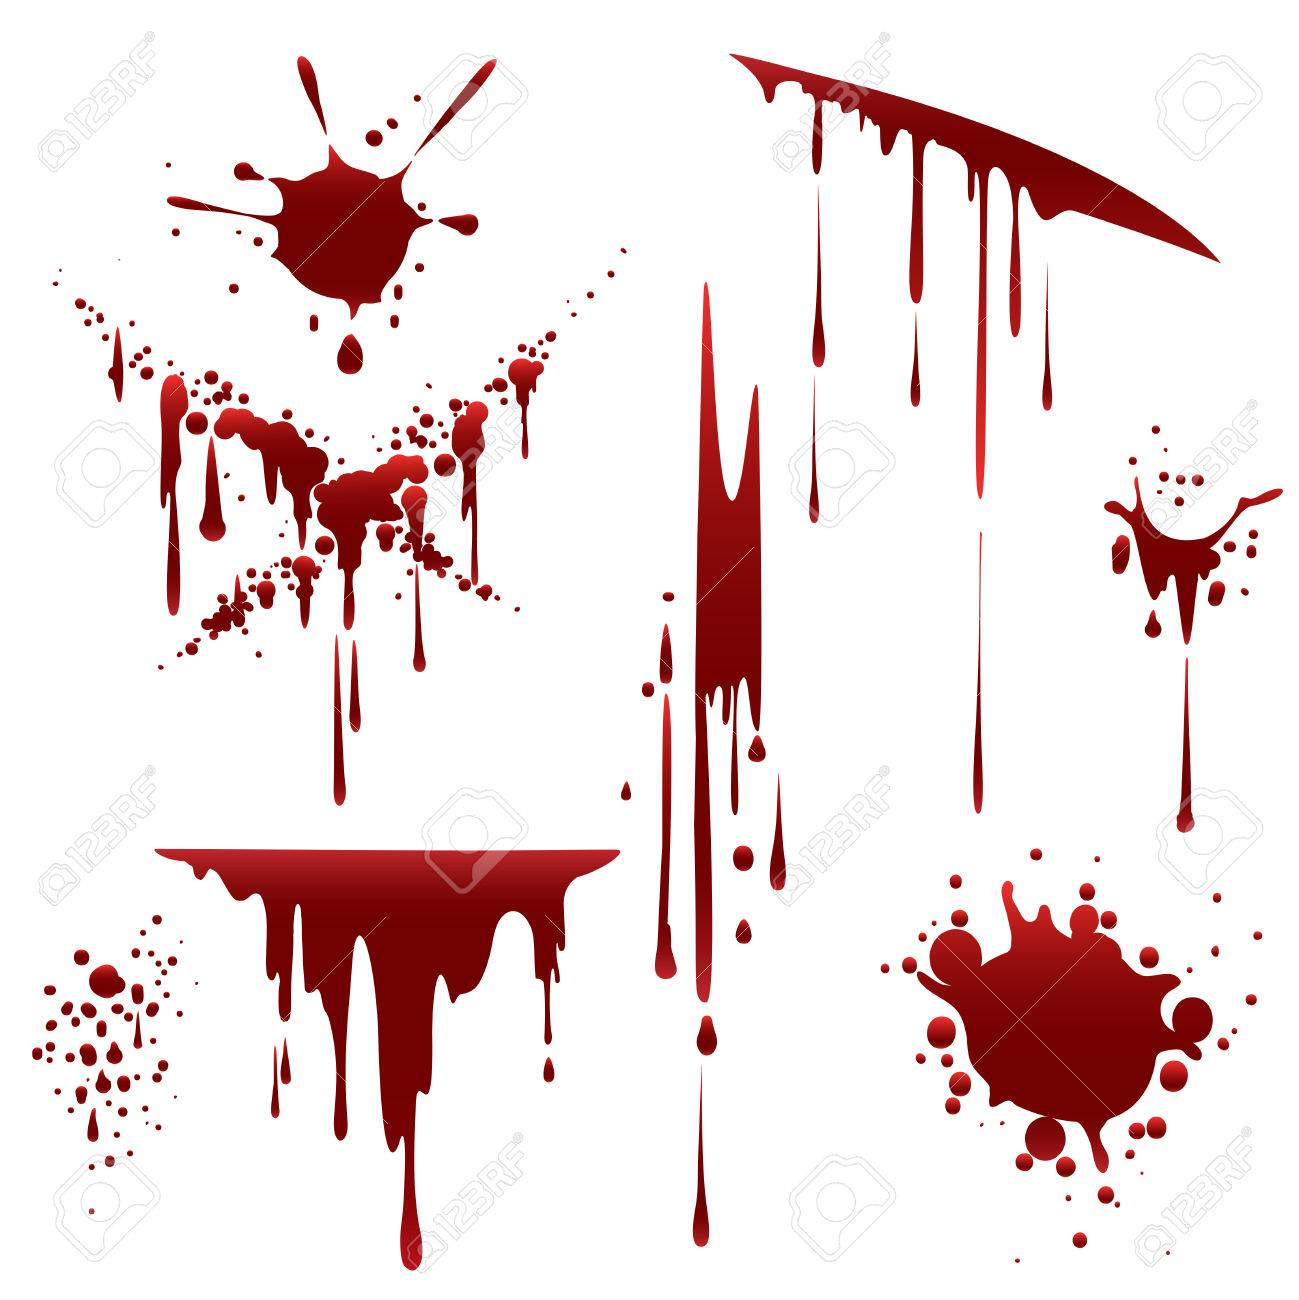 bloody horror scruffy splatter blood drops splashes and clots rh 123rf com blood splatter vector free download blood splatter vector images